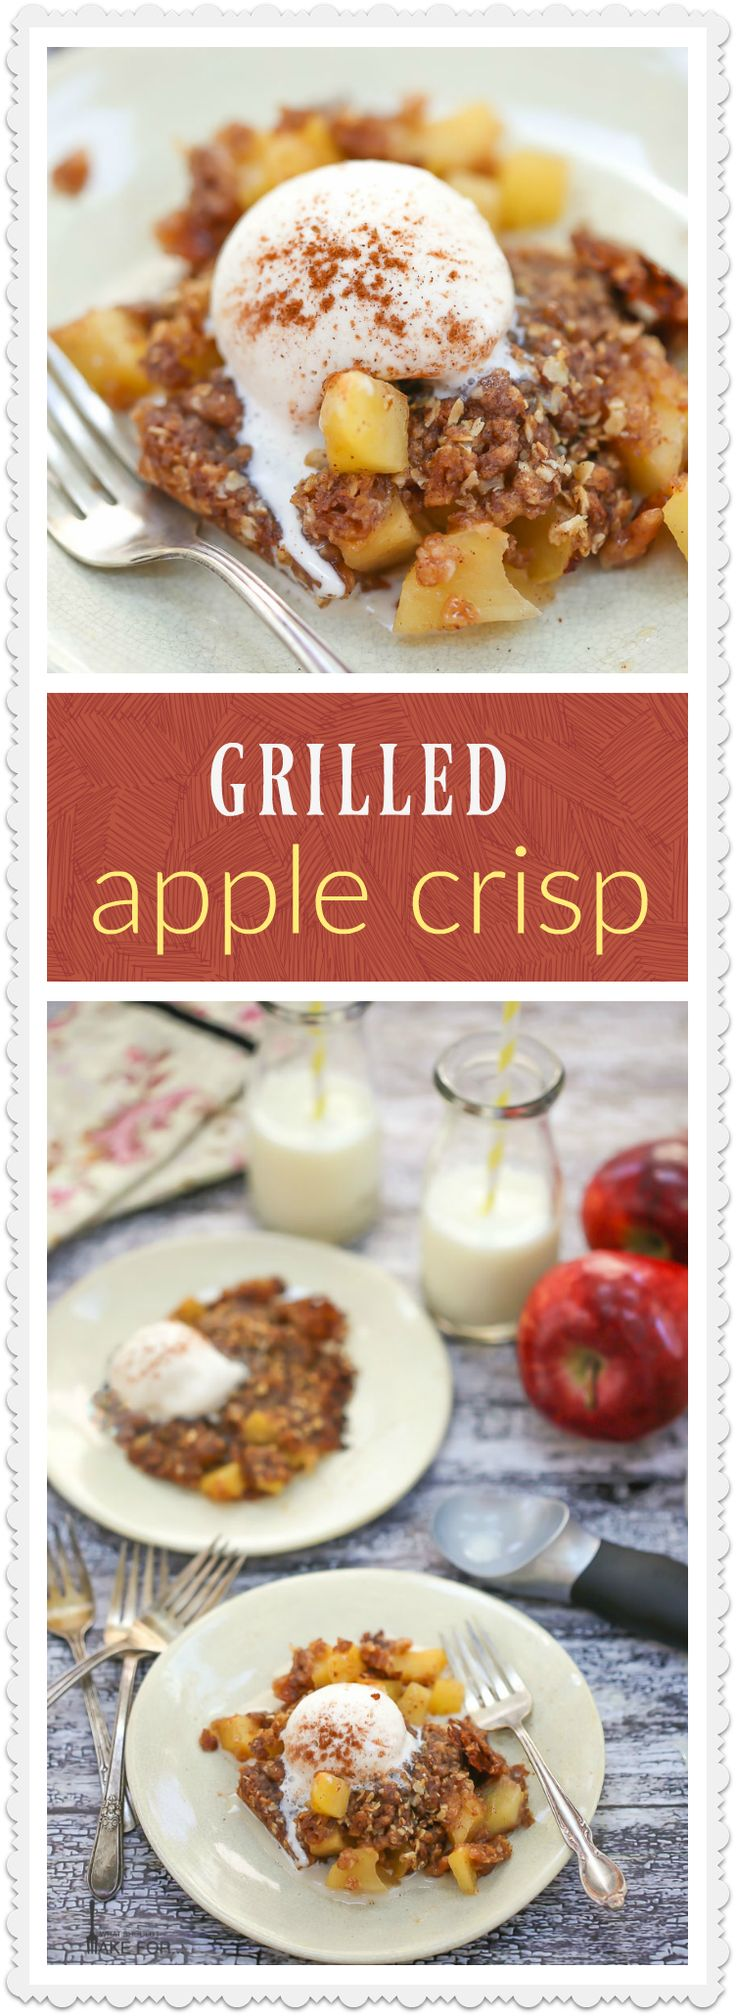 Perfect for camping or tailgating, a grilled apple crisp in a foil pack is a…